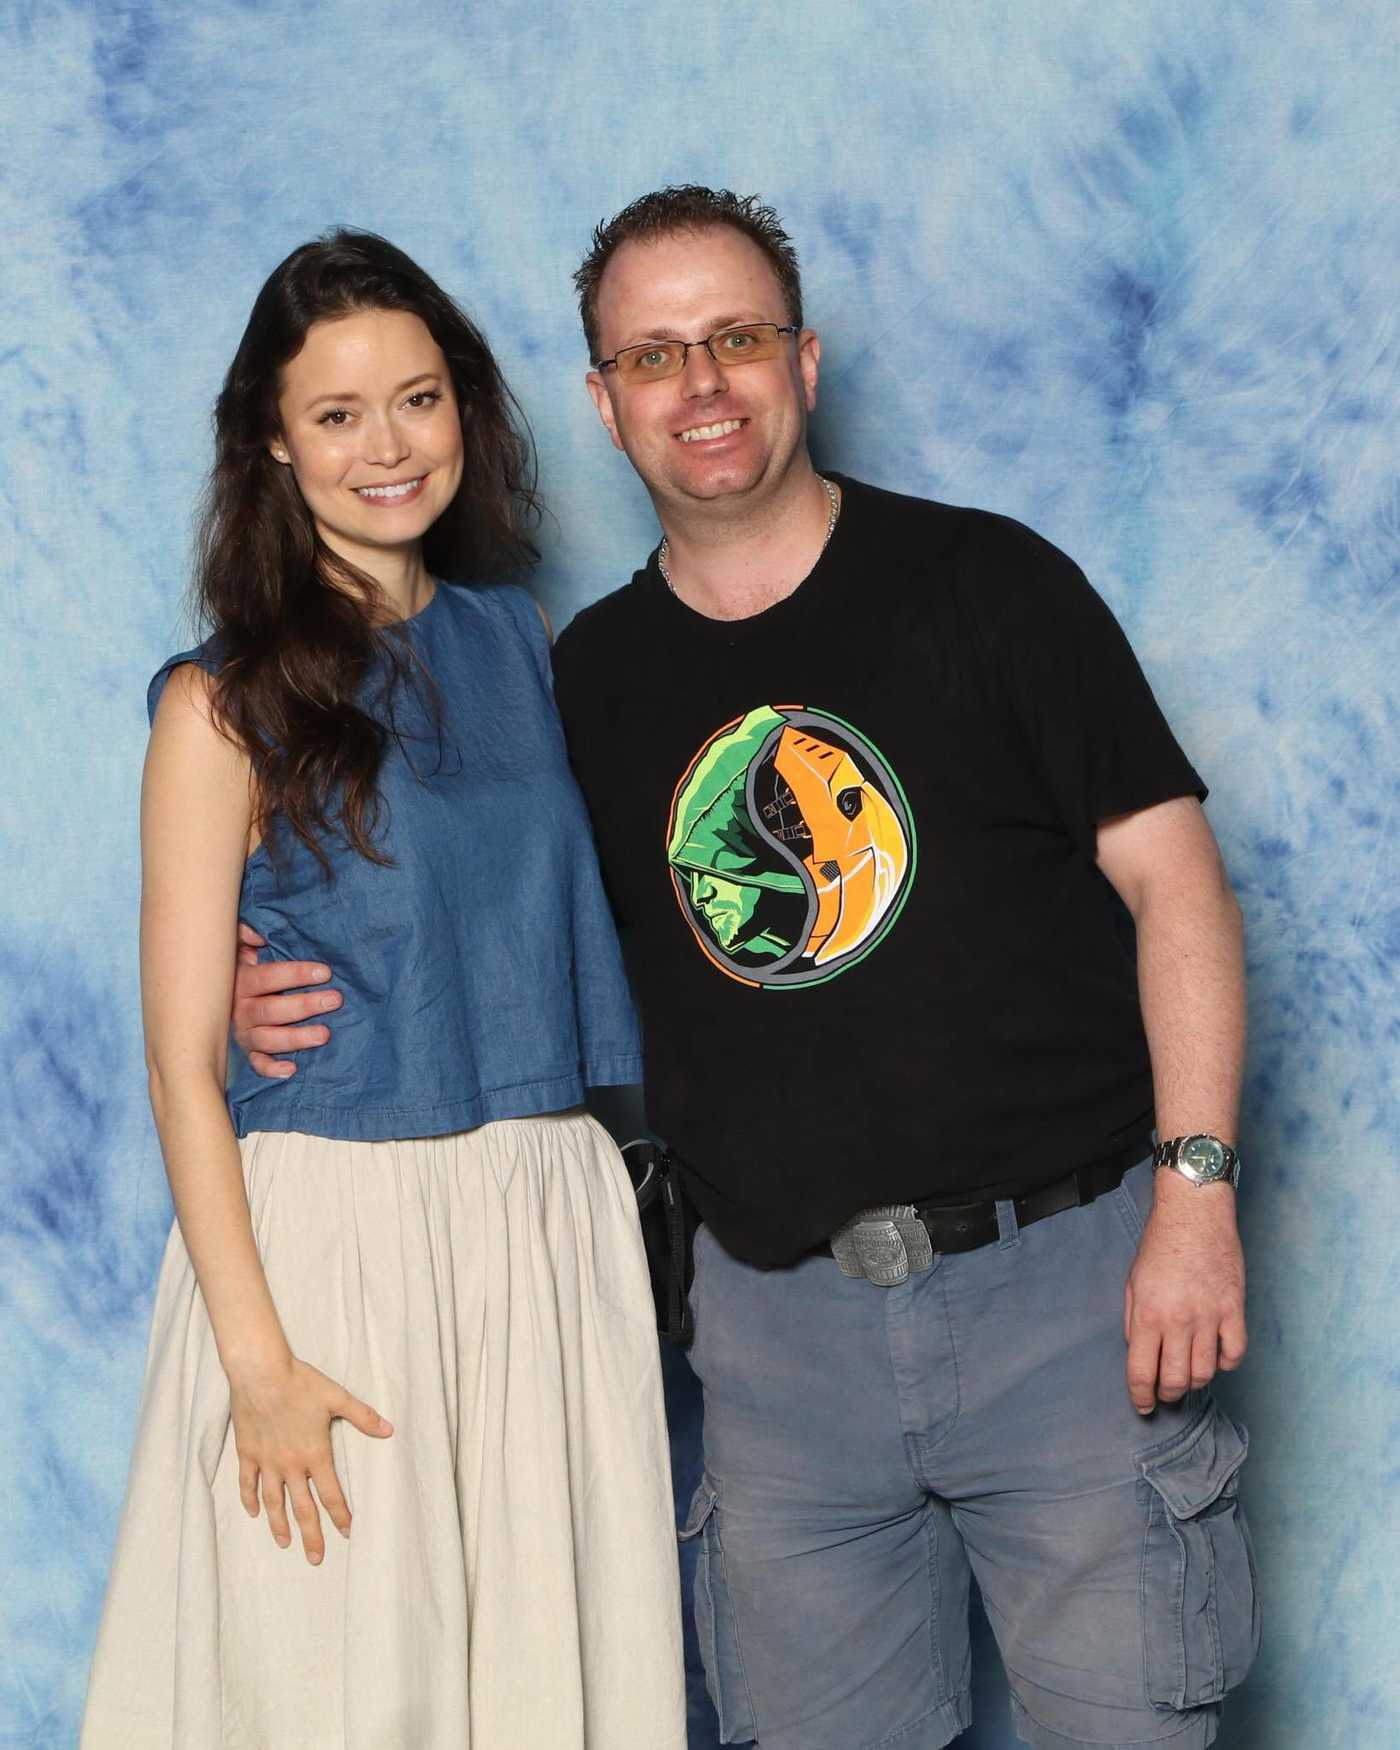 Summer Glau at the Montreal Film and Comic-Con 07/09/2016